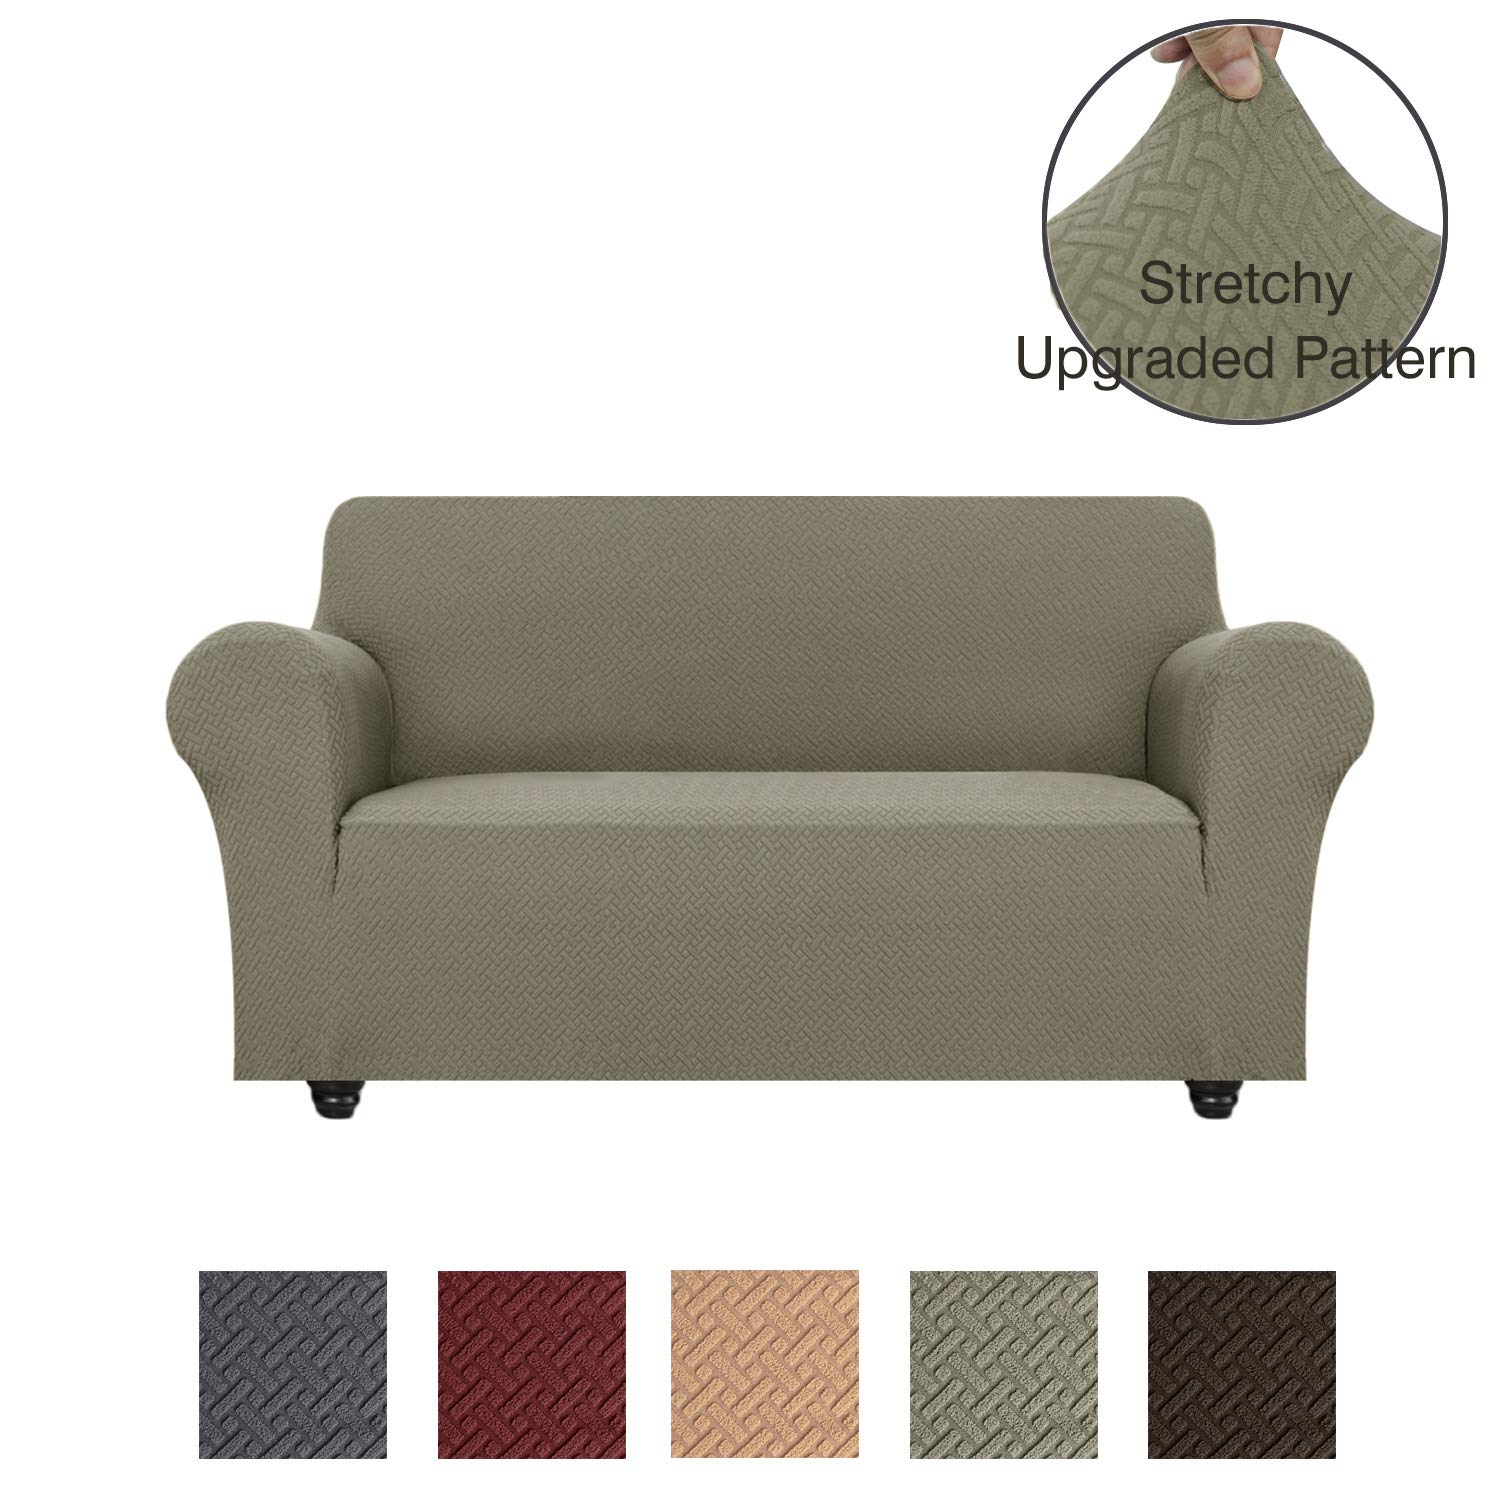 Marvelous Obytex Stretch Loveseat Cover Polyester And Spandex Upgrade Pattern Couch Covers Dog Cat Pet Slipcovers Furniture Protectorsmachine Washable Inzonedesignstudio Interior Chair Design Inzonedesignstudiocom